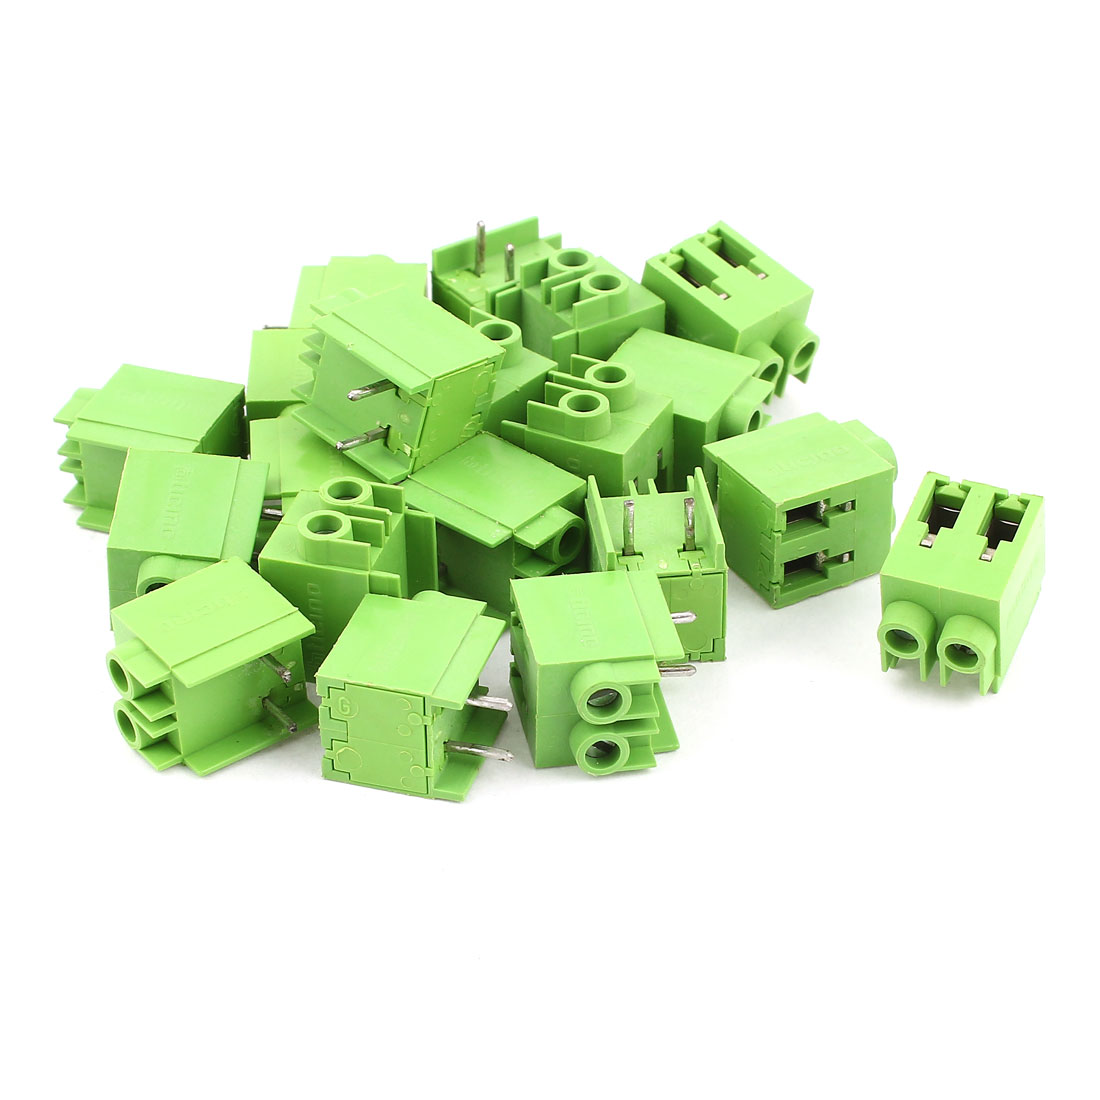 20 Pcs 5.76mm Pitch PCB Mount Screw Terminal Block Green